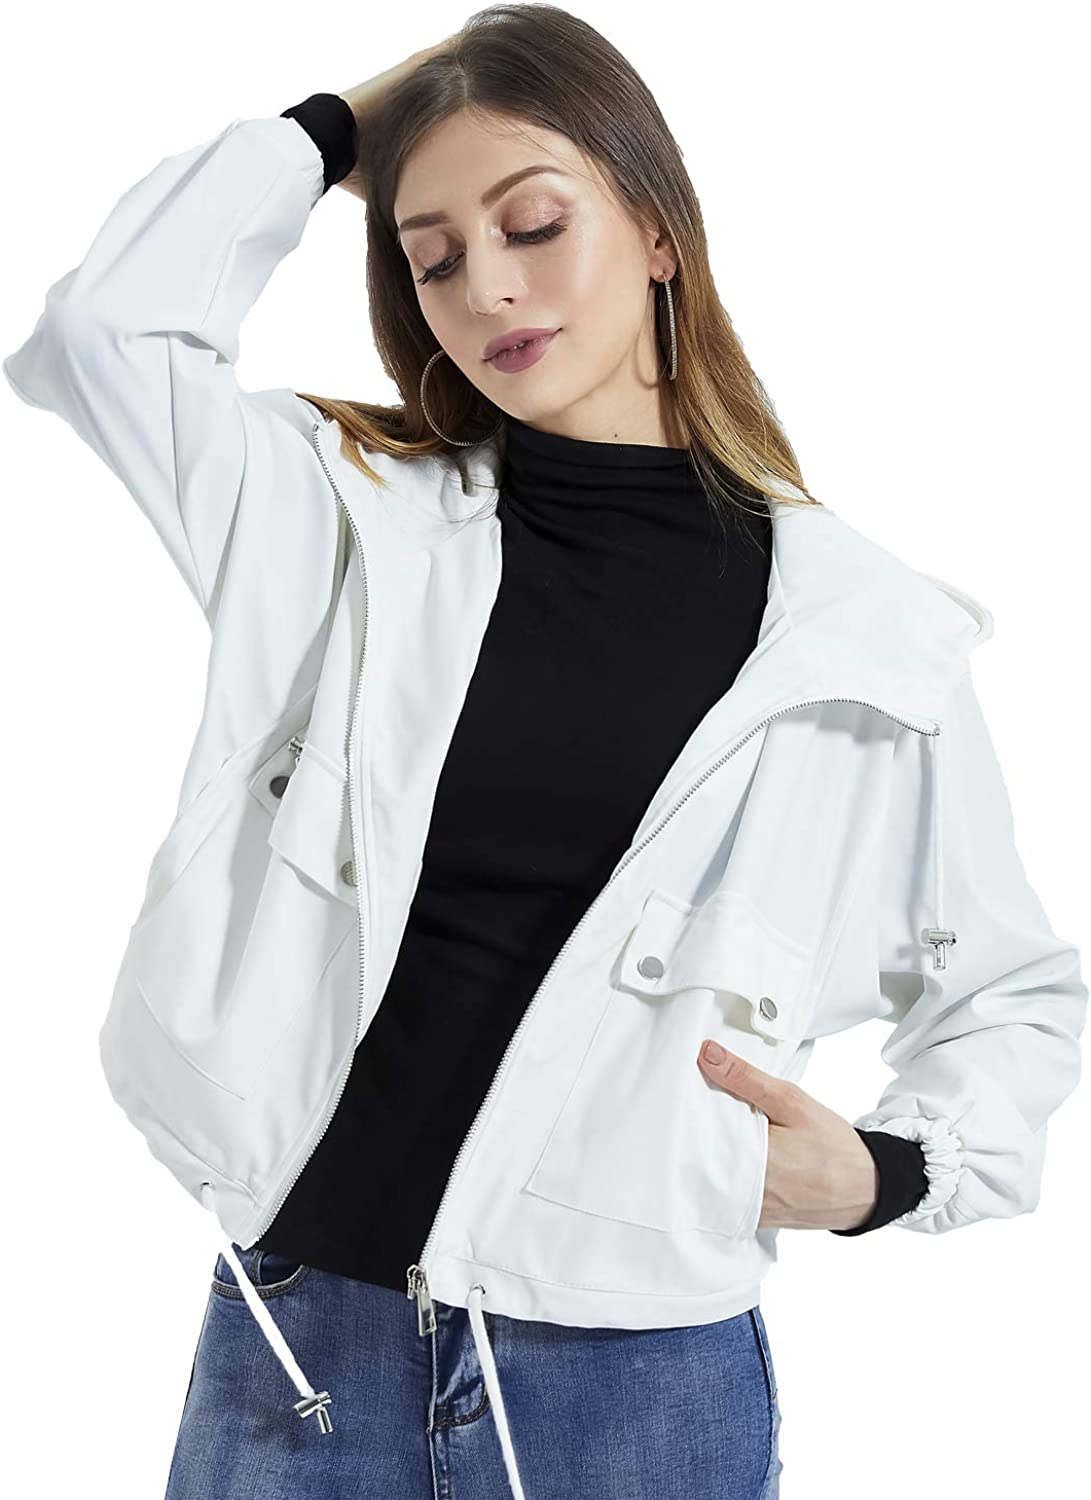 DIASHINY Women's Hooded Loose Max 61% OFF Jacket Zip F Coat Outlet sale feature Spring Up Rain